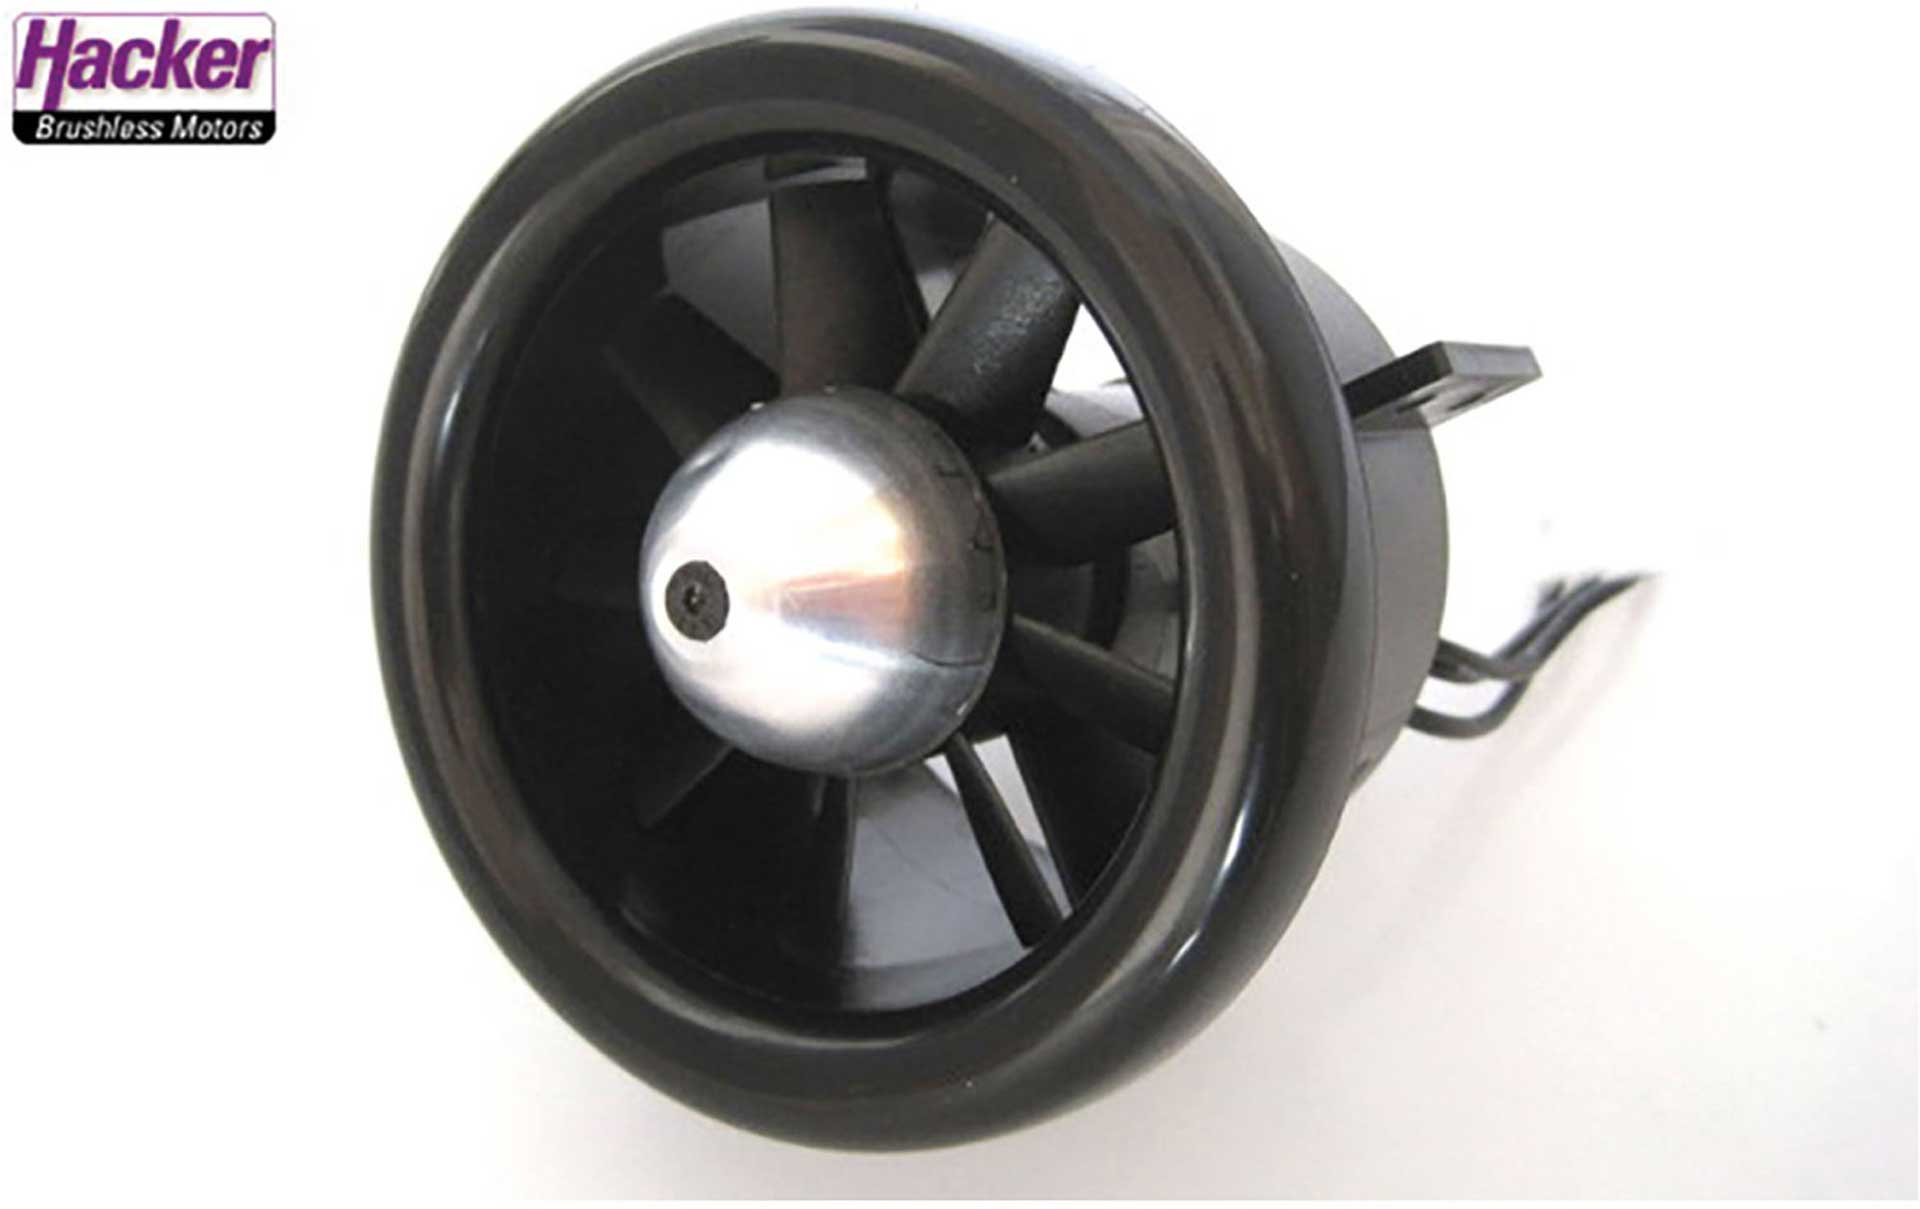 HACKER STREAM FAN 70/2900 E-IMPELLER